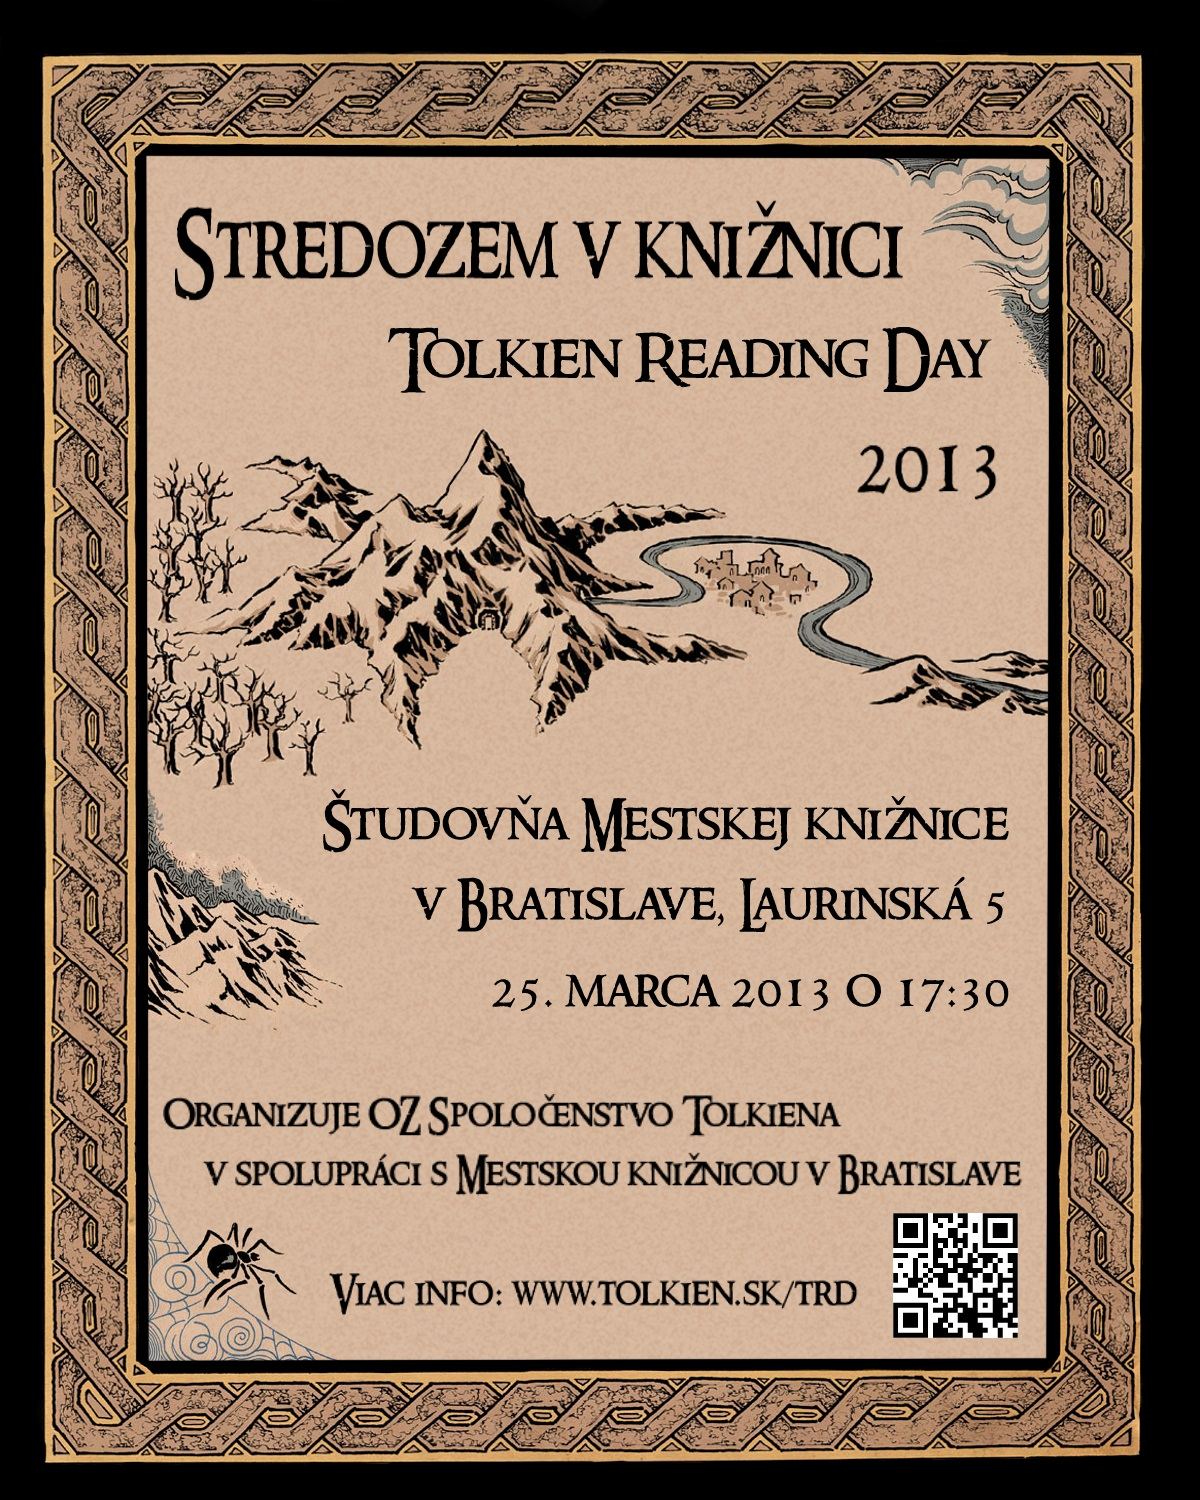 Tolkien Reading Day 2013